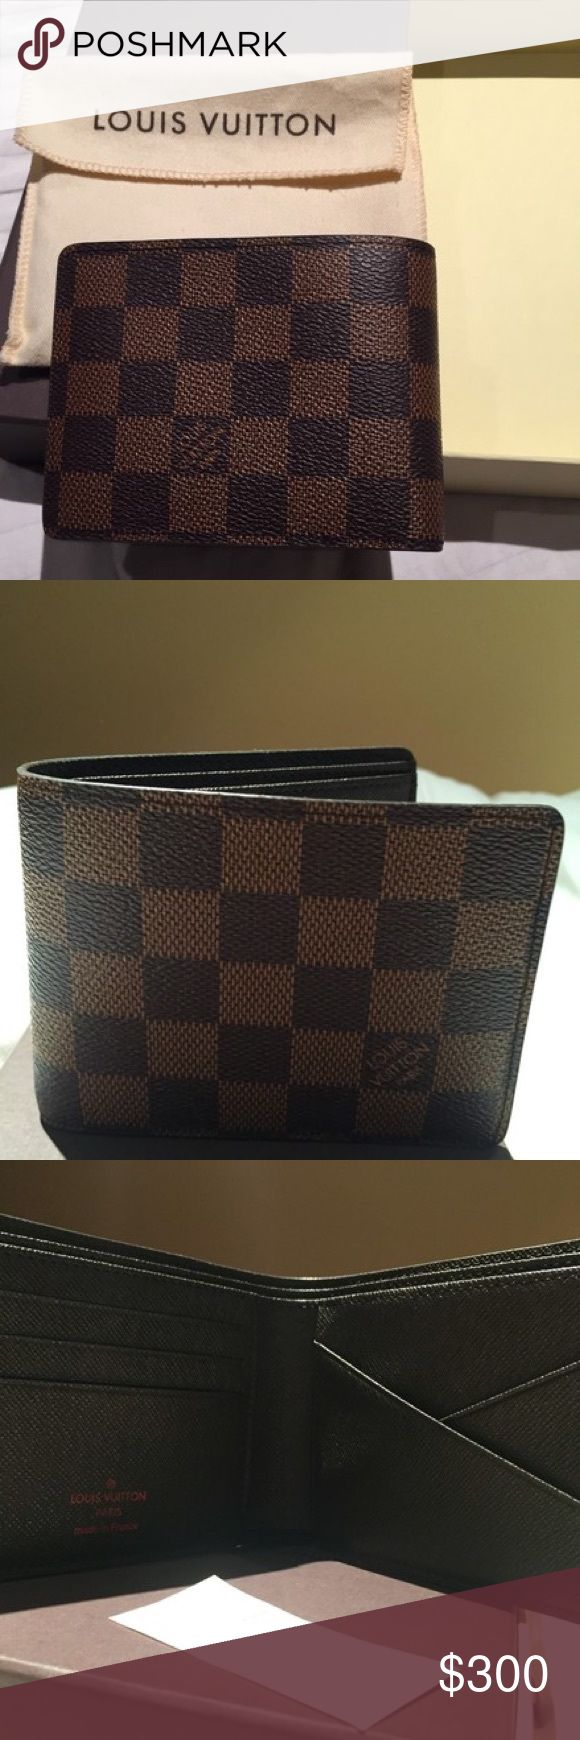 Louis Vuitton Damier Ebene Mens Wallet Like New Louis Vuitton Accessories